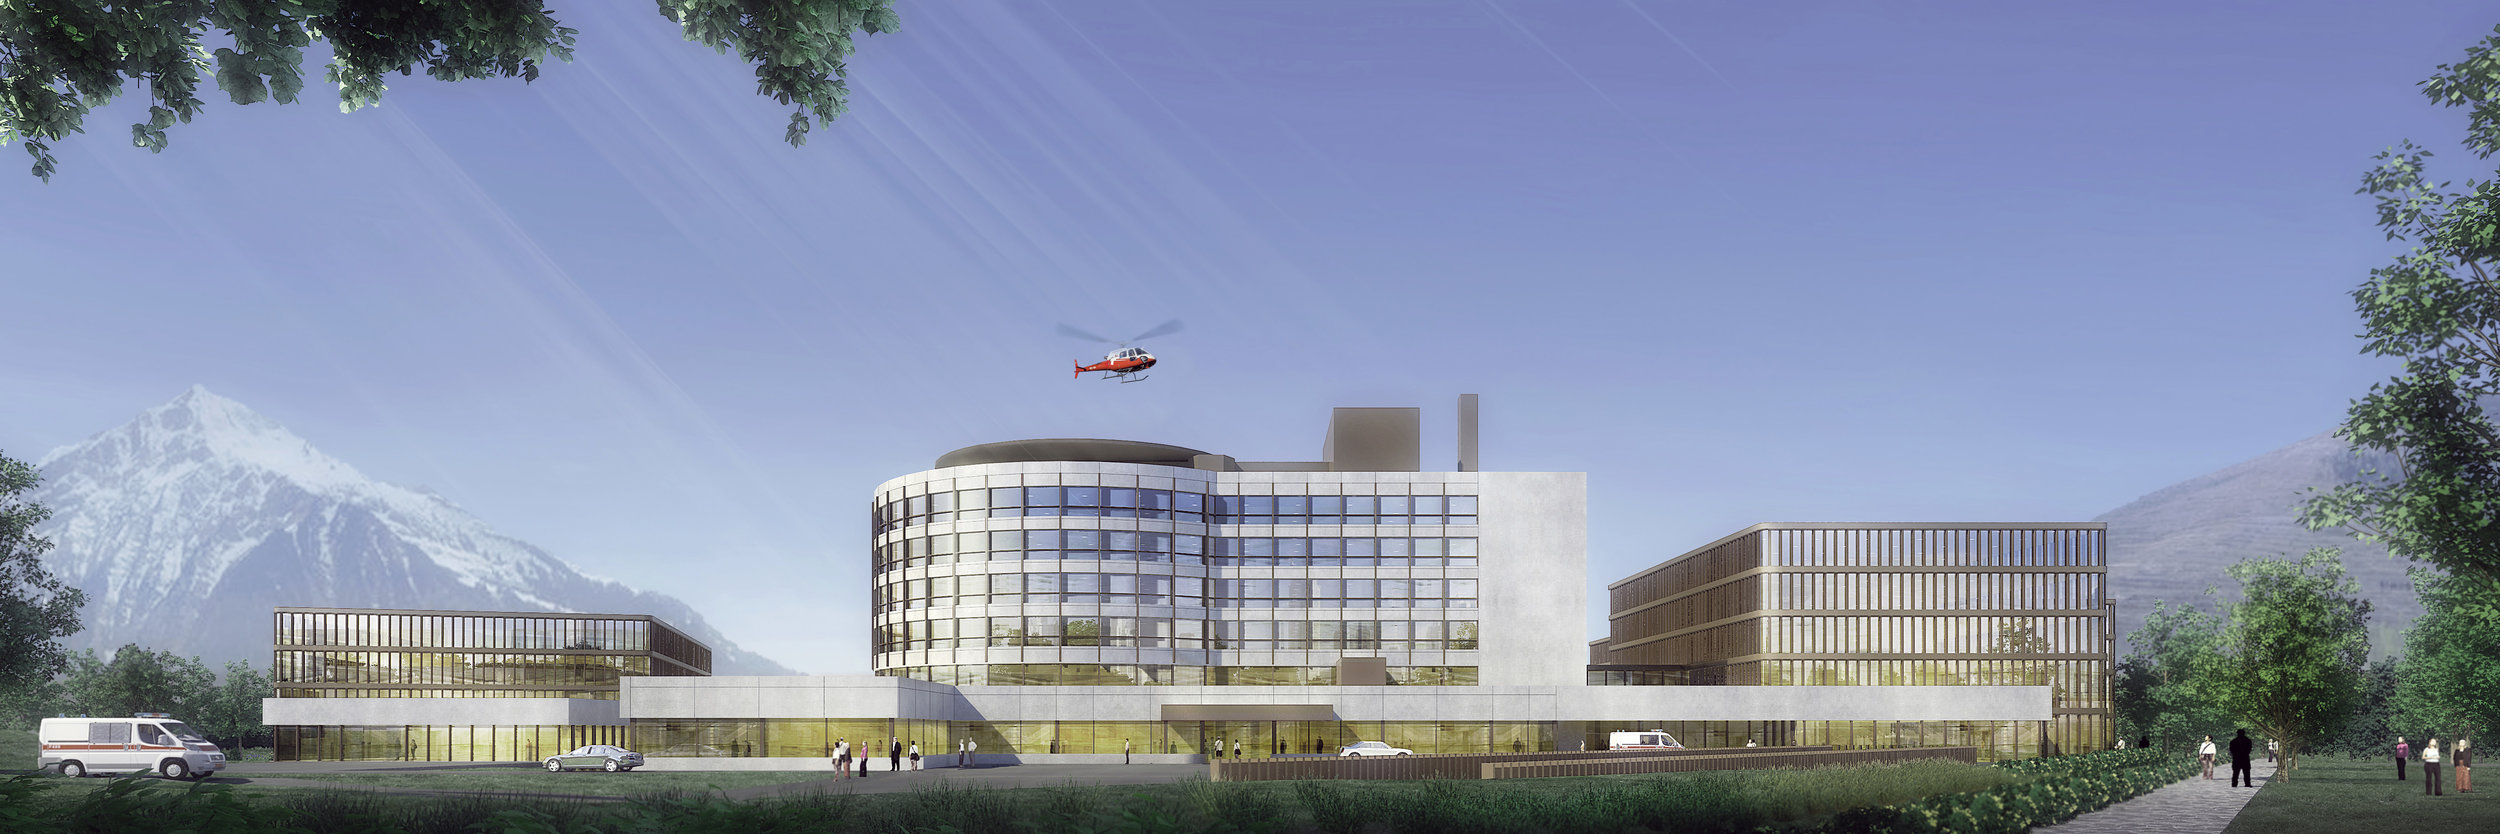 Extension of the Hospital of Brig  brig, switzerland